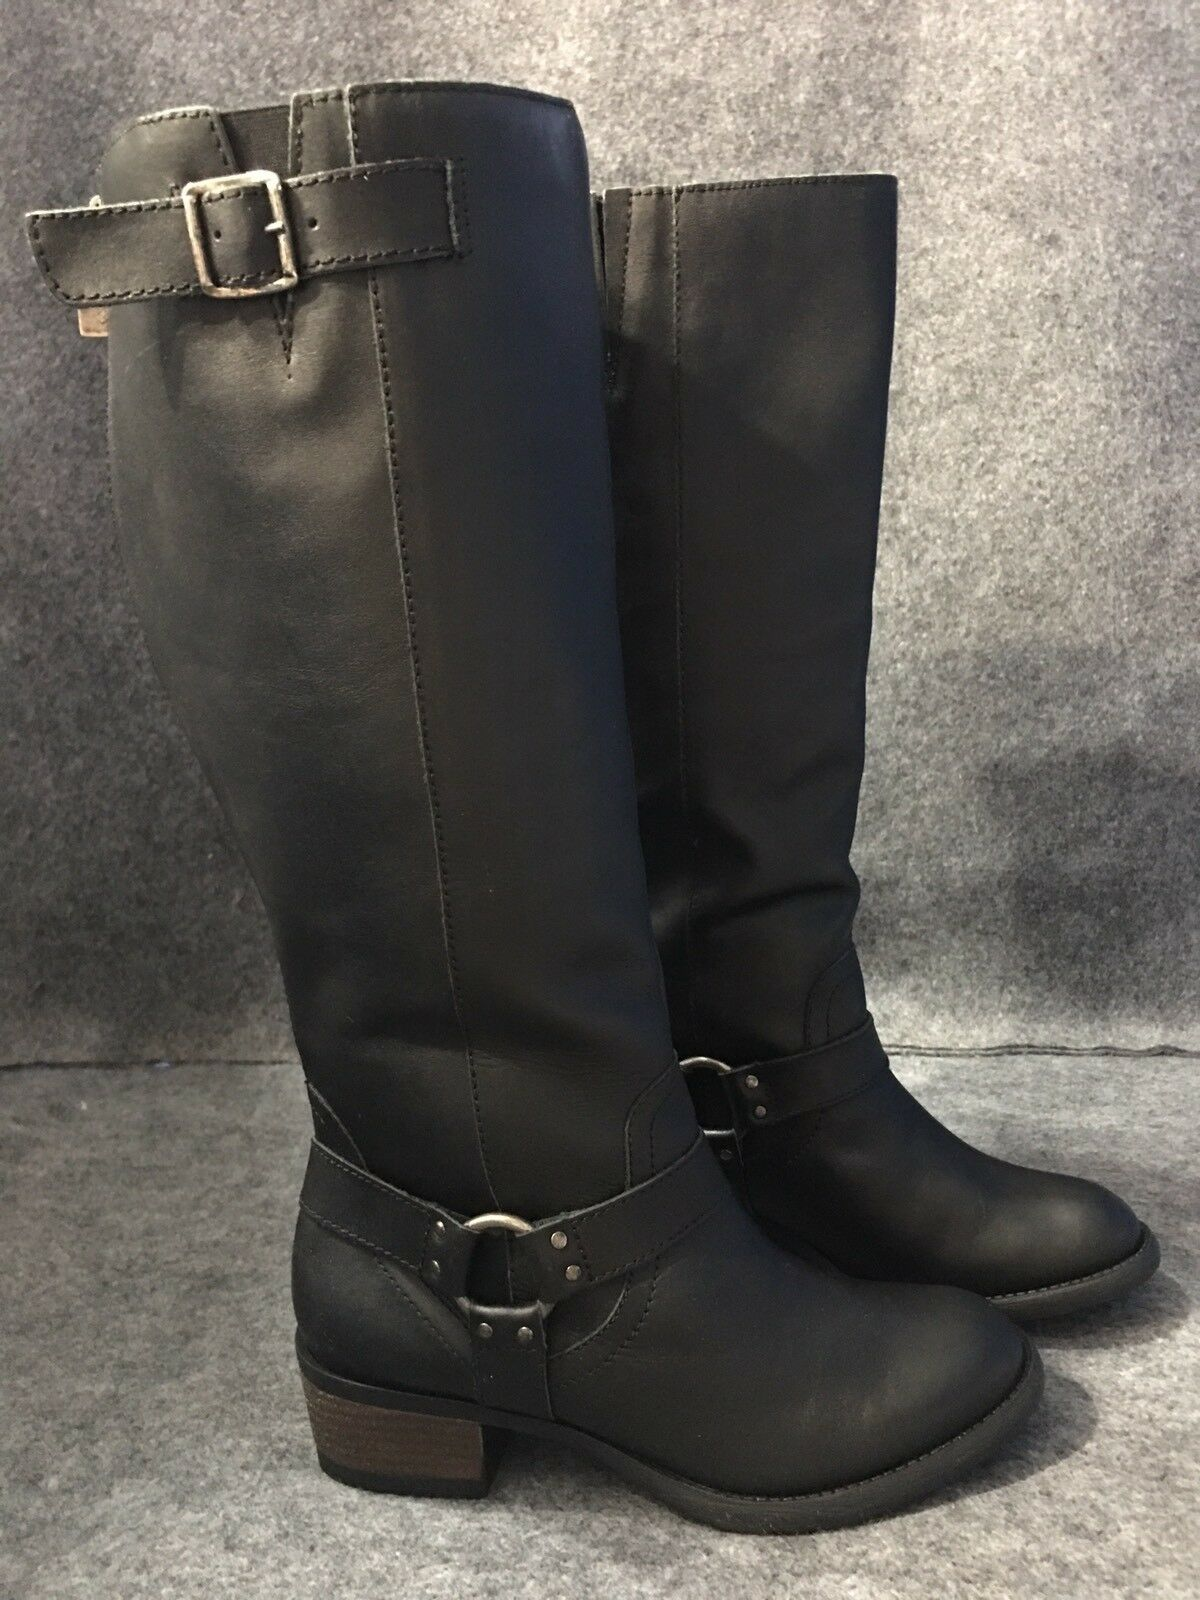 LANE BRYANT SIENNA LEATHER HARNESS RIDING BOOTS Wide Width Calf Choose Your Size